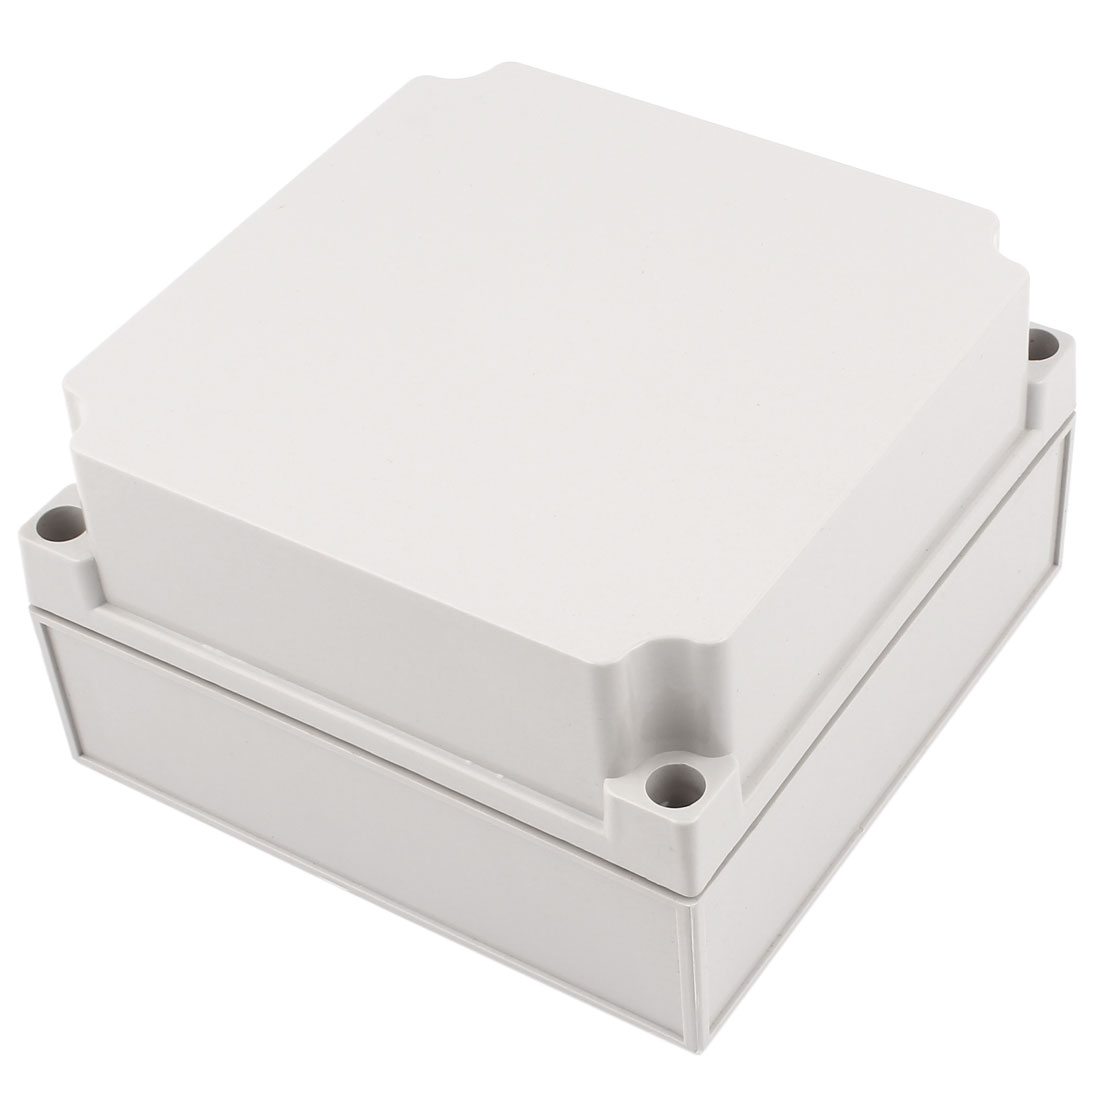 175mm x 175mm x 100mm Waterproof Plastic Sealed DIY Joint Electrical Junction Box